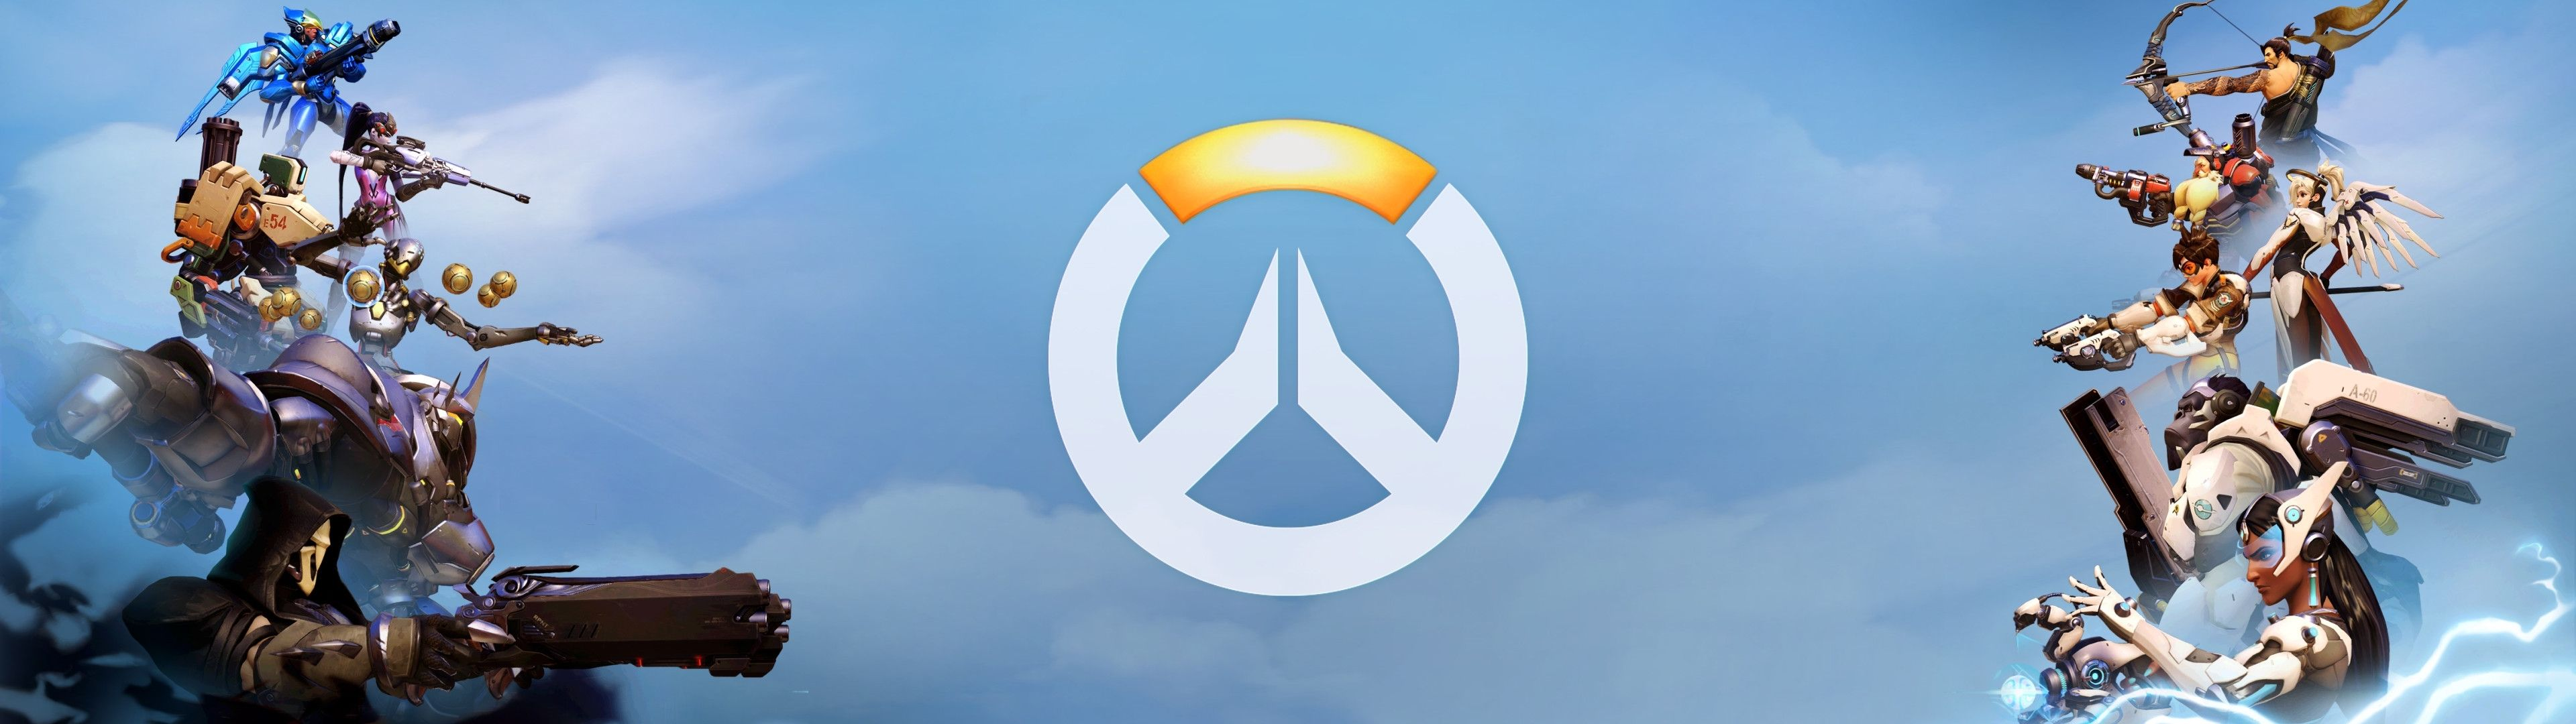 10 New Dual Monitor Wallpaper Overwatch Full Hd 1920x1080 For Pc Background